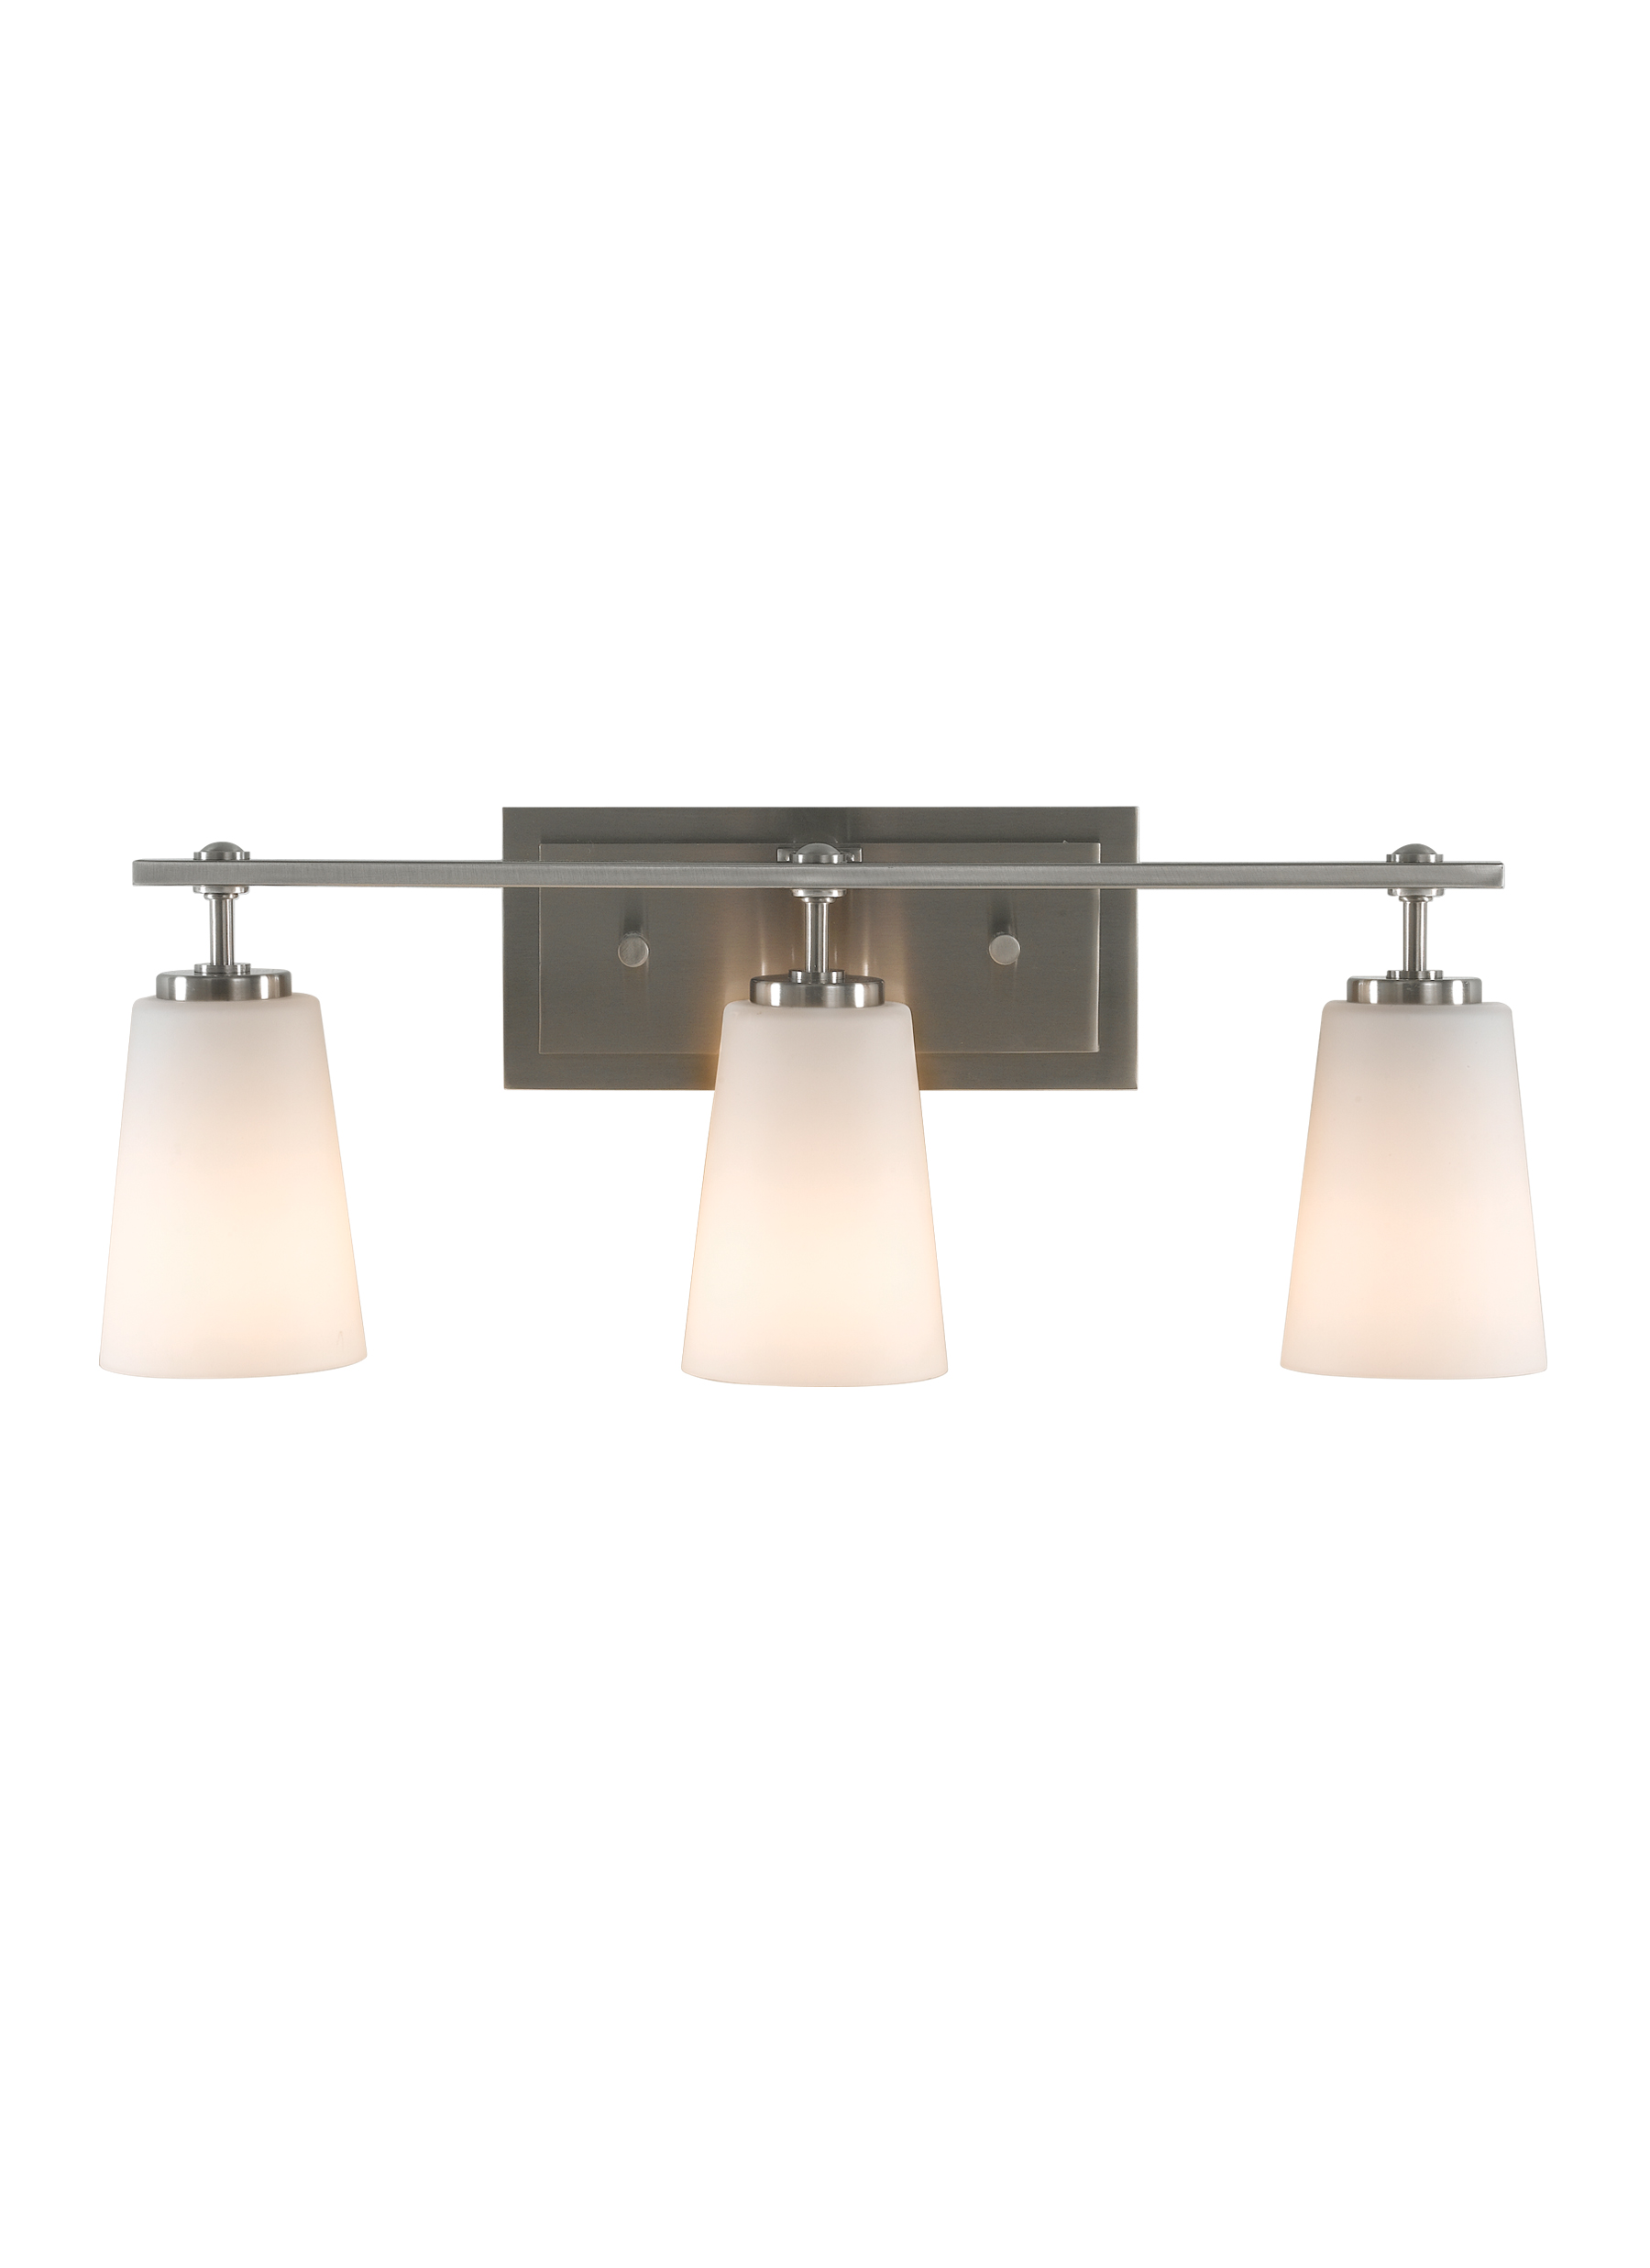 VS14903-BS,3 - Light Vanity Fixture,Brushed Steel